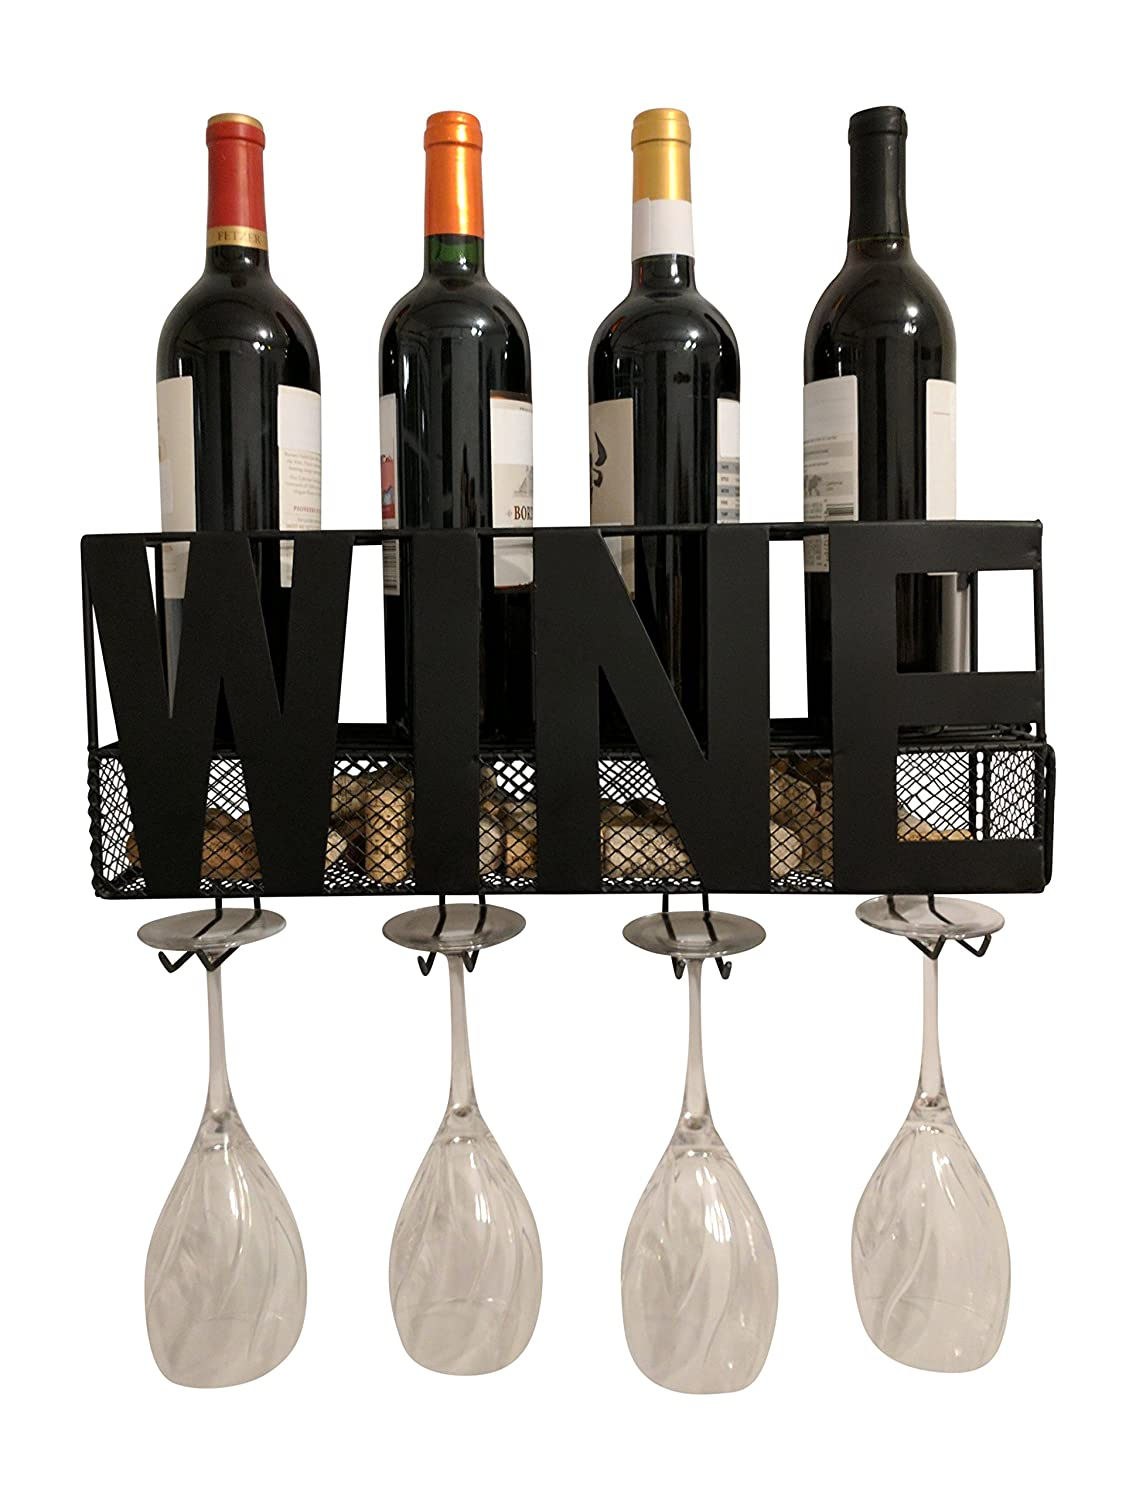 Gianna's Home Metal Wall Mounted Wine Rack and Cork Holder (Home)